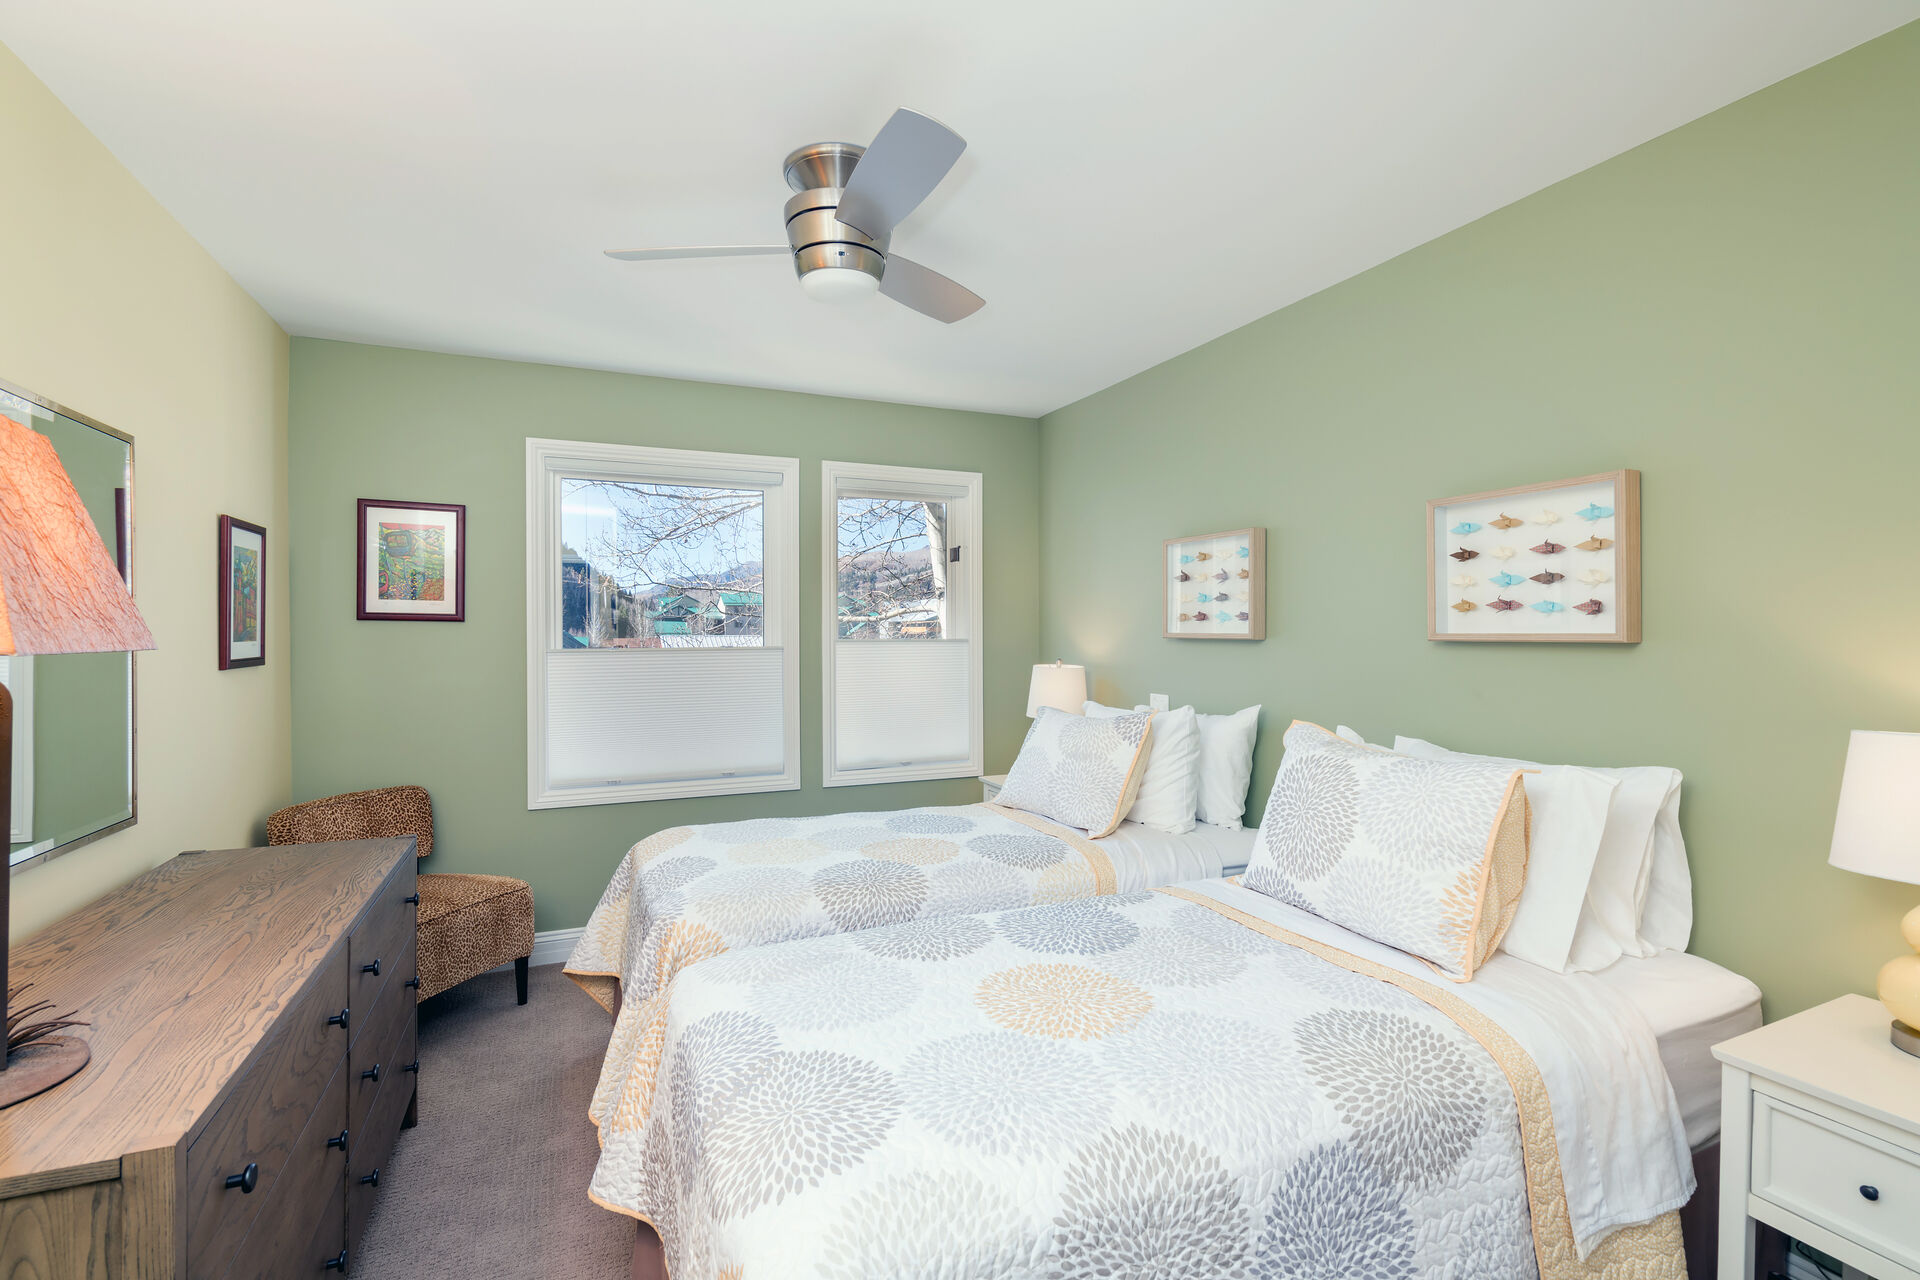 Bedroom with Two Beds, Dresser, Ceiling Fan, and Chair